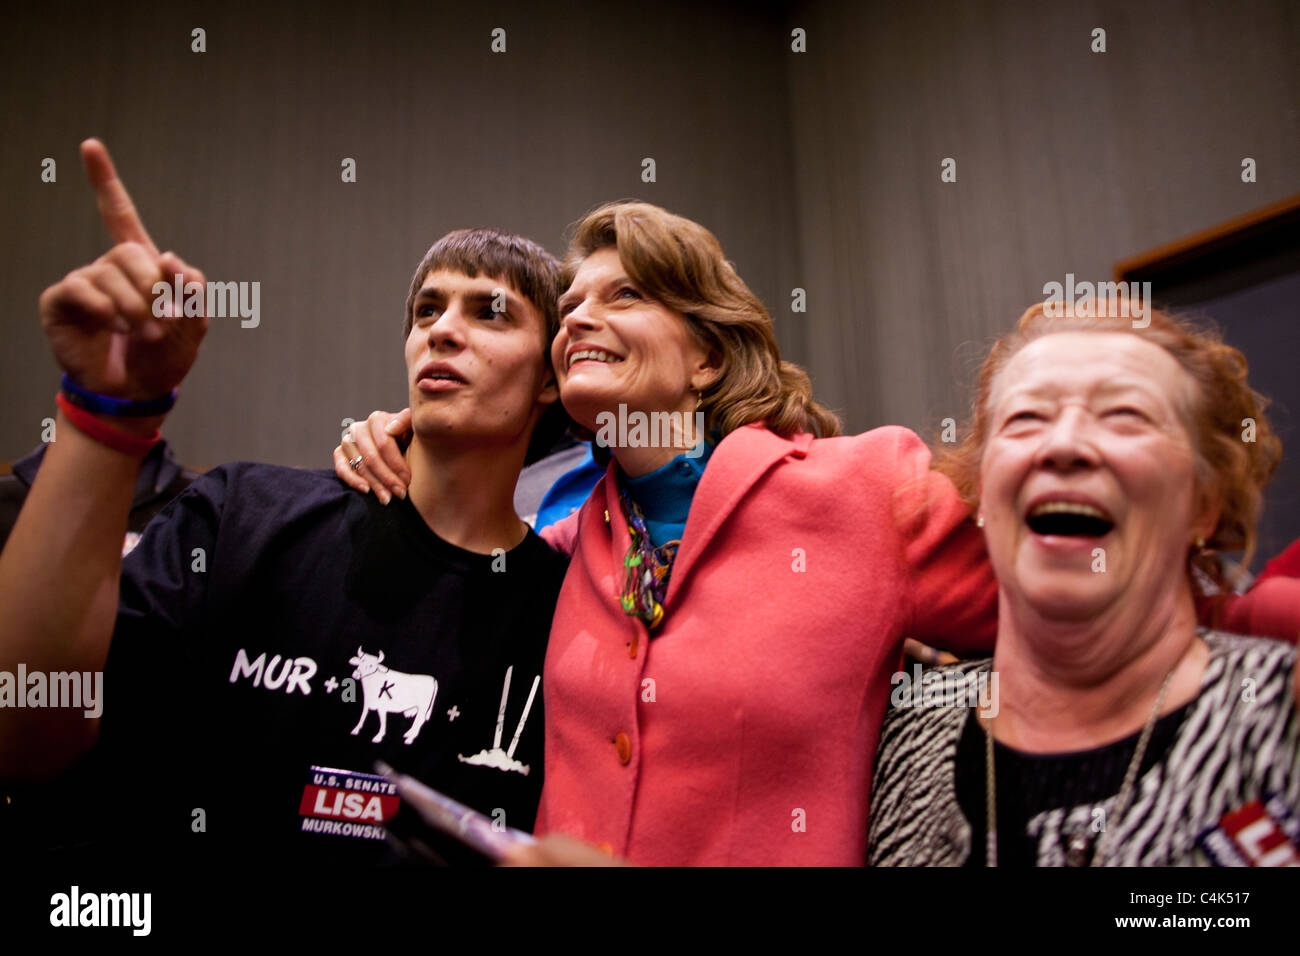 Incumbent write-in candidate for US Senate Lisa Murkowski and family